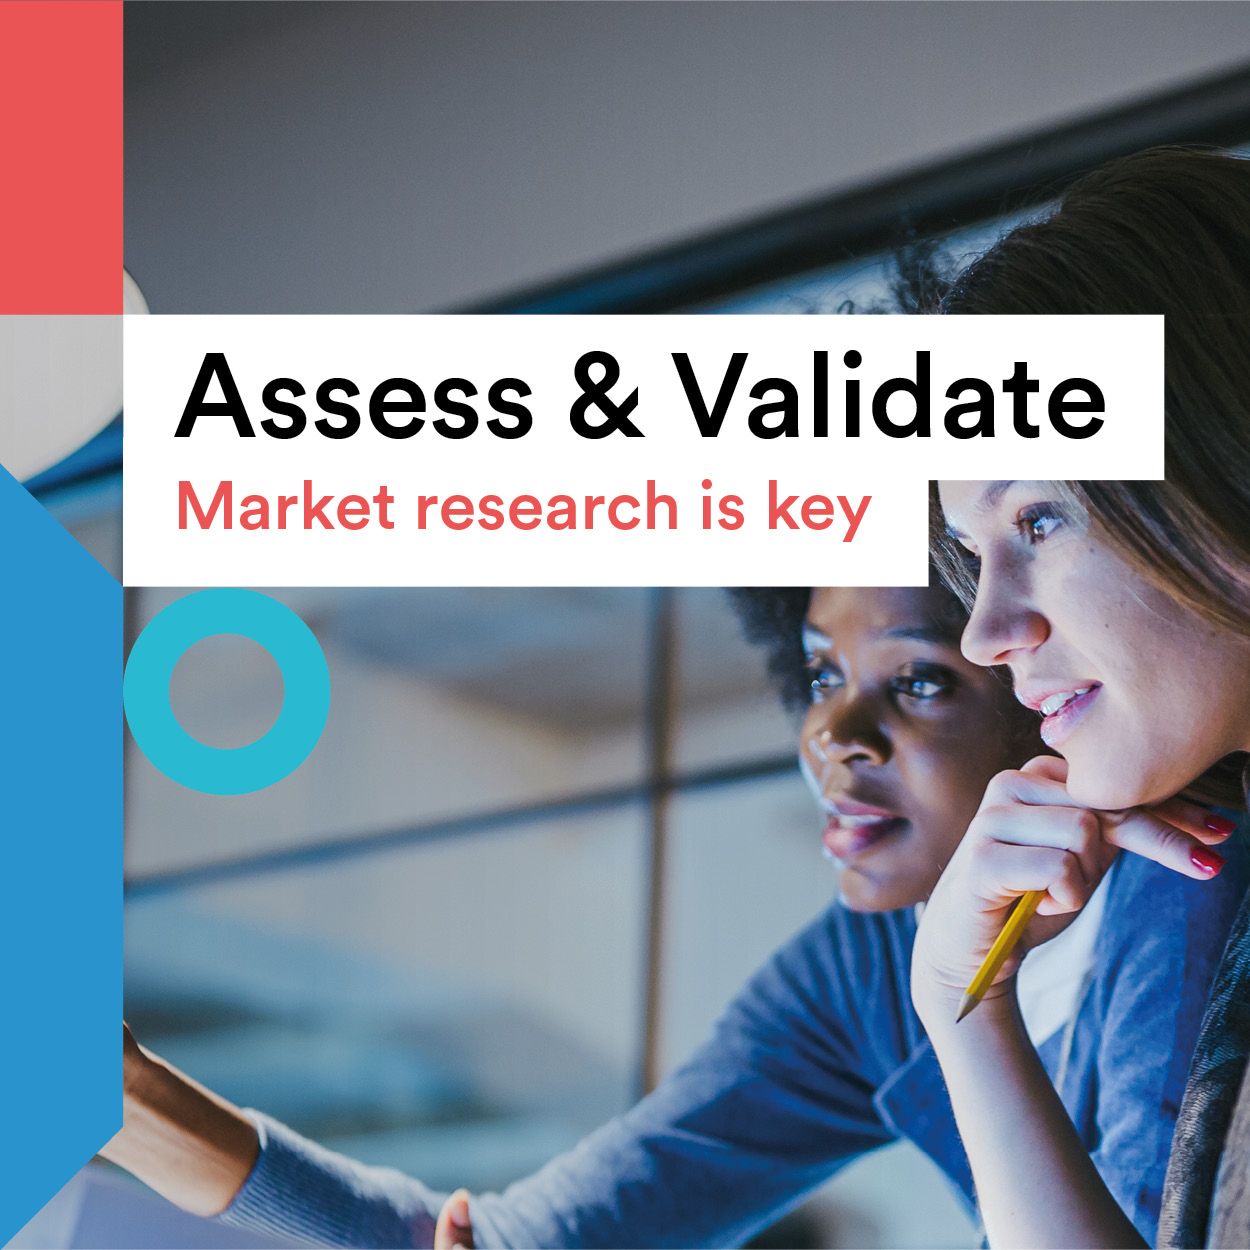 Assess & validate title and two women at a computer screen